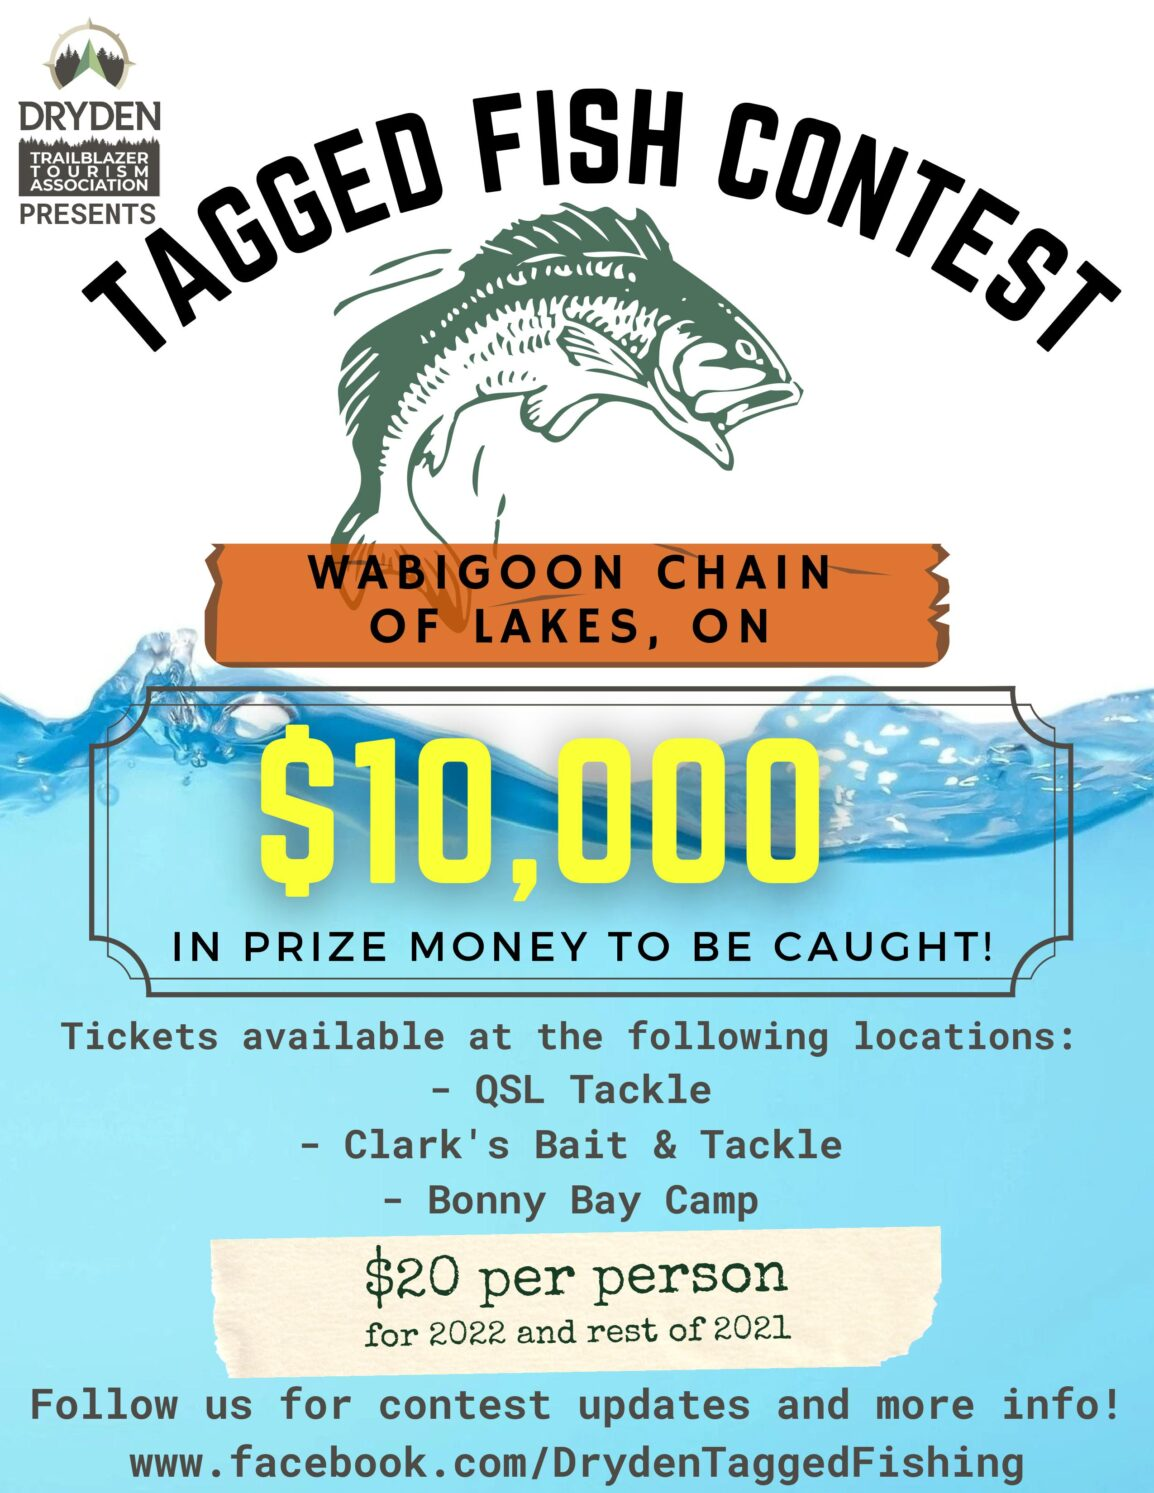 Tagged fish contest. 10000 dollars in prize money to be caught!